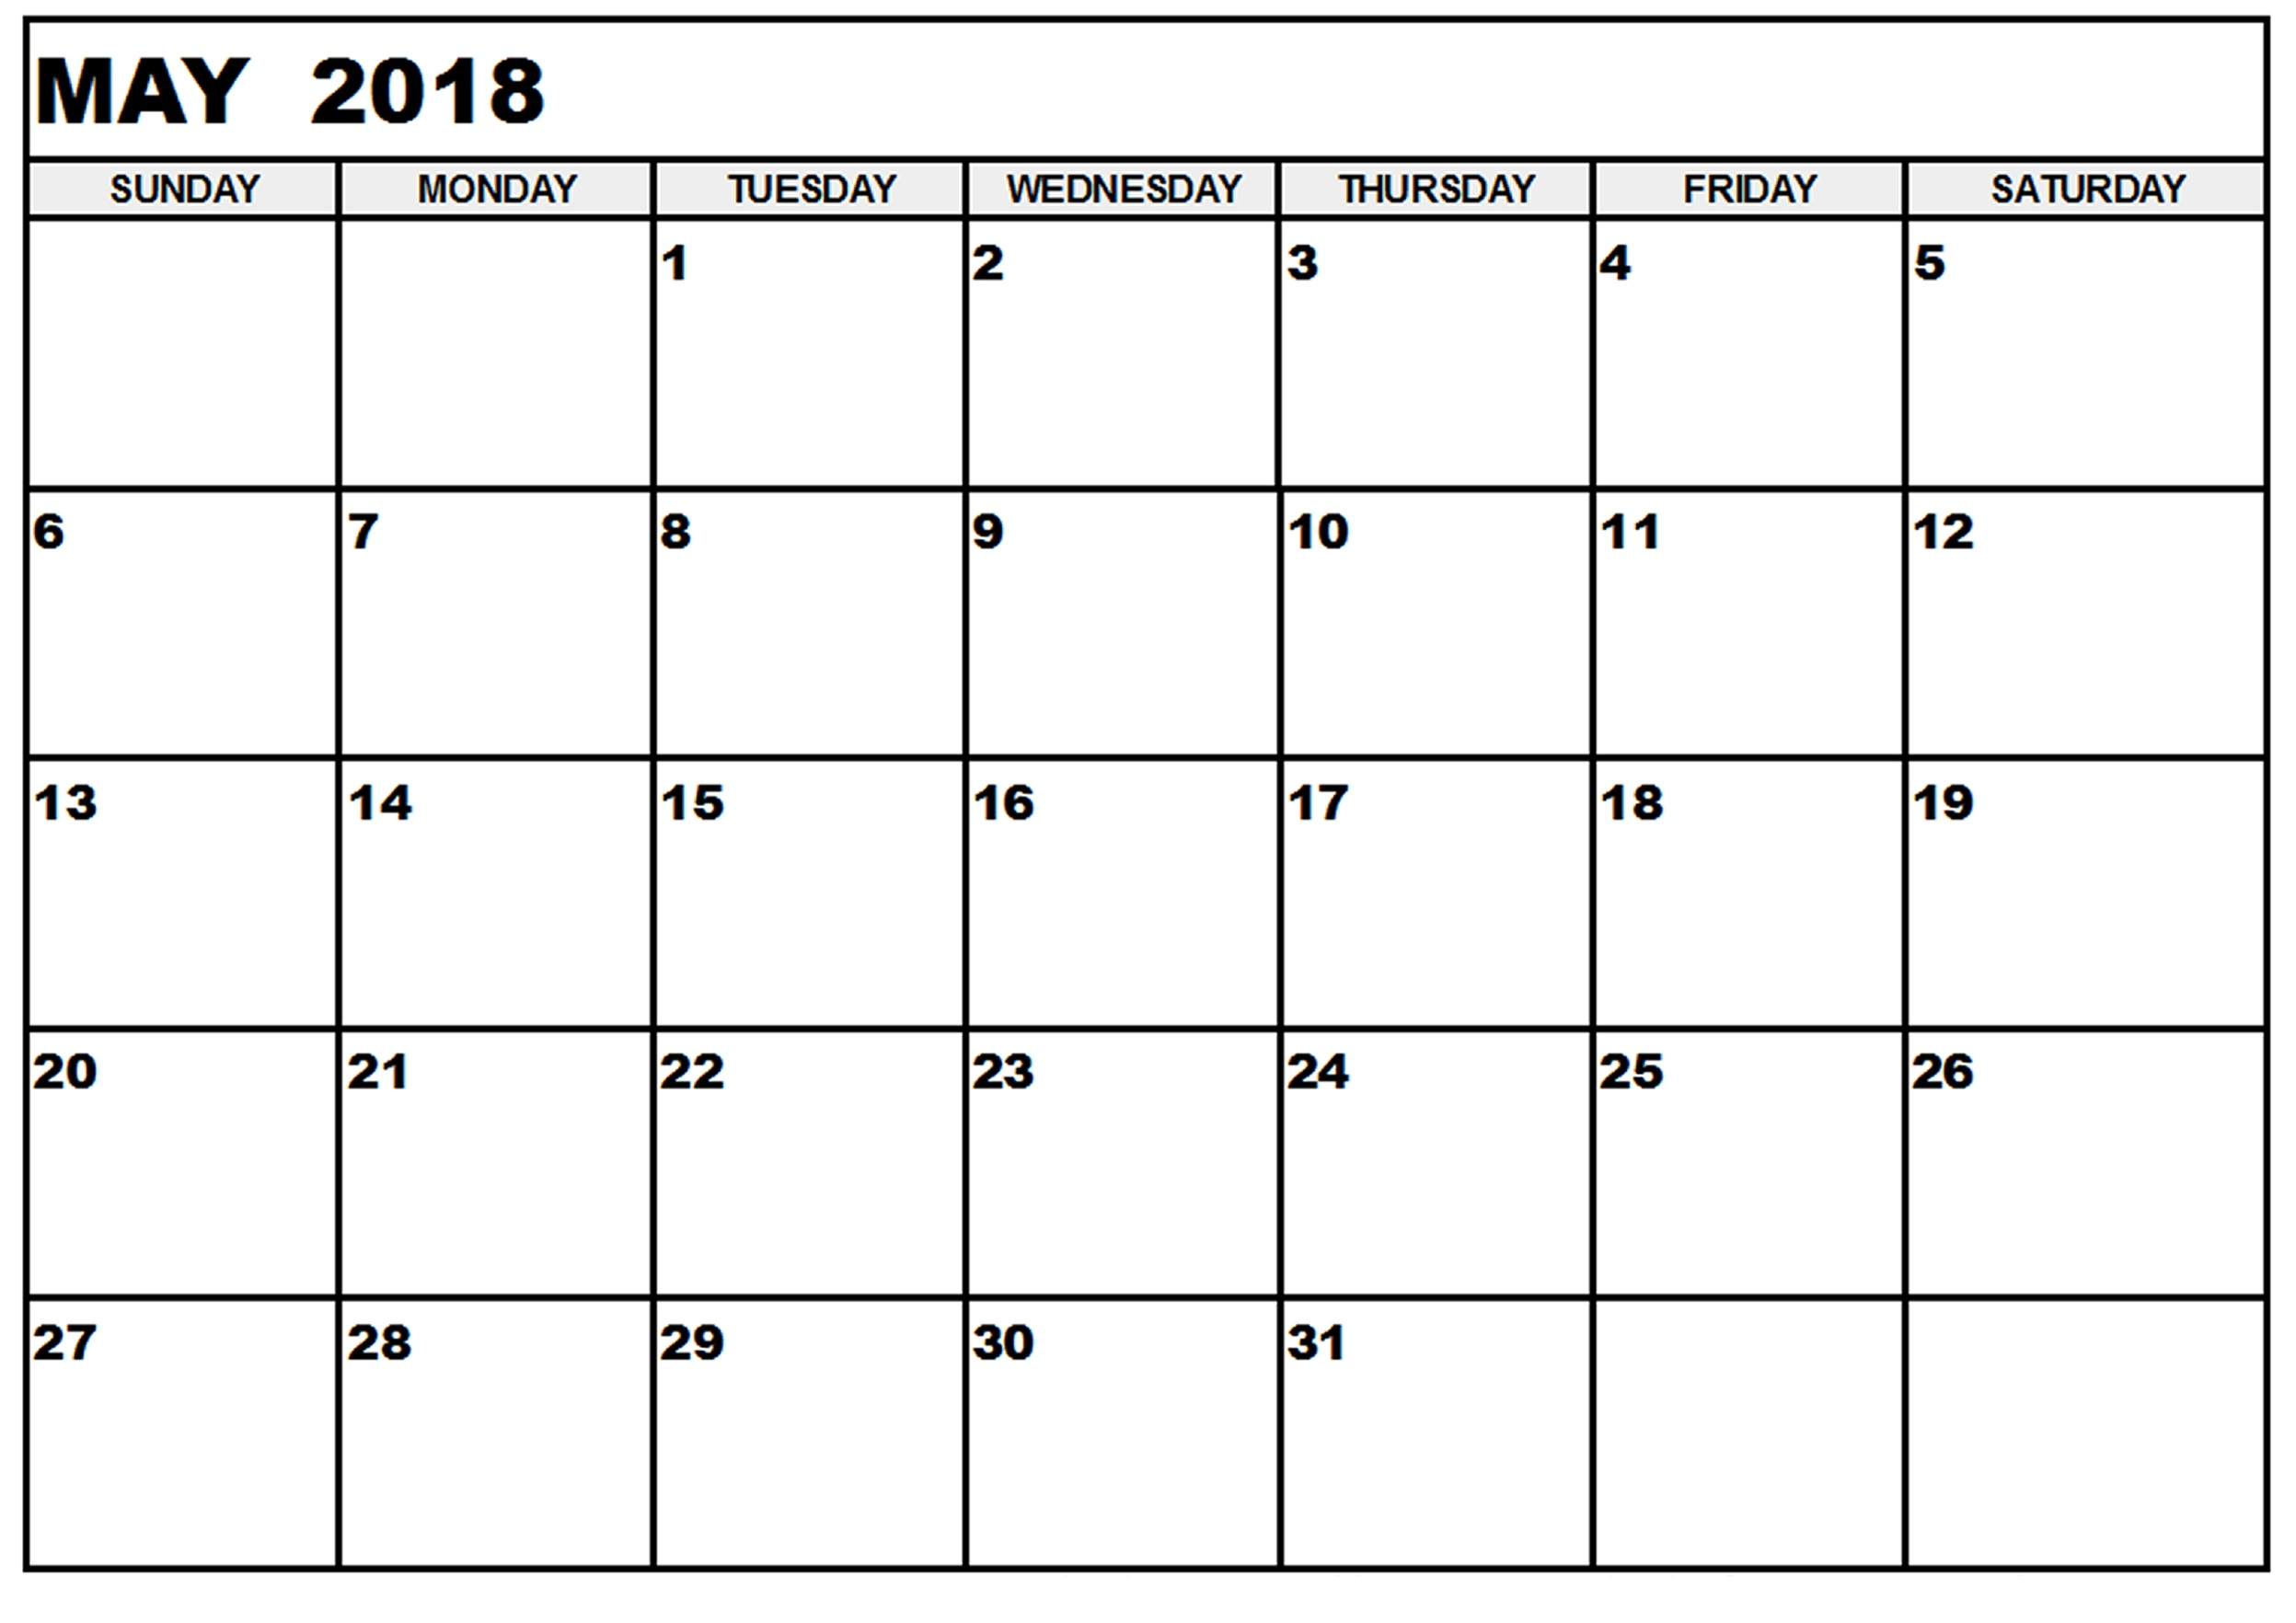 May 2018 Printable Calendar Template